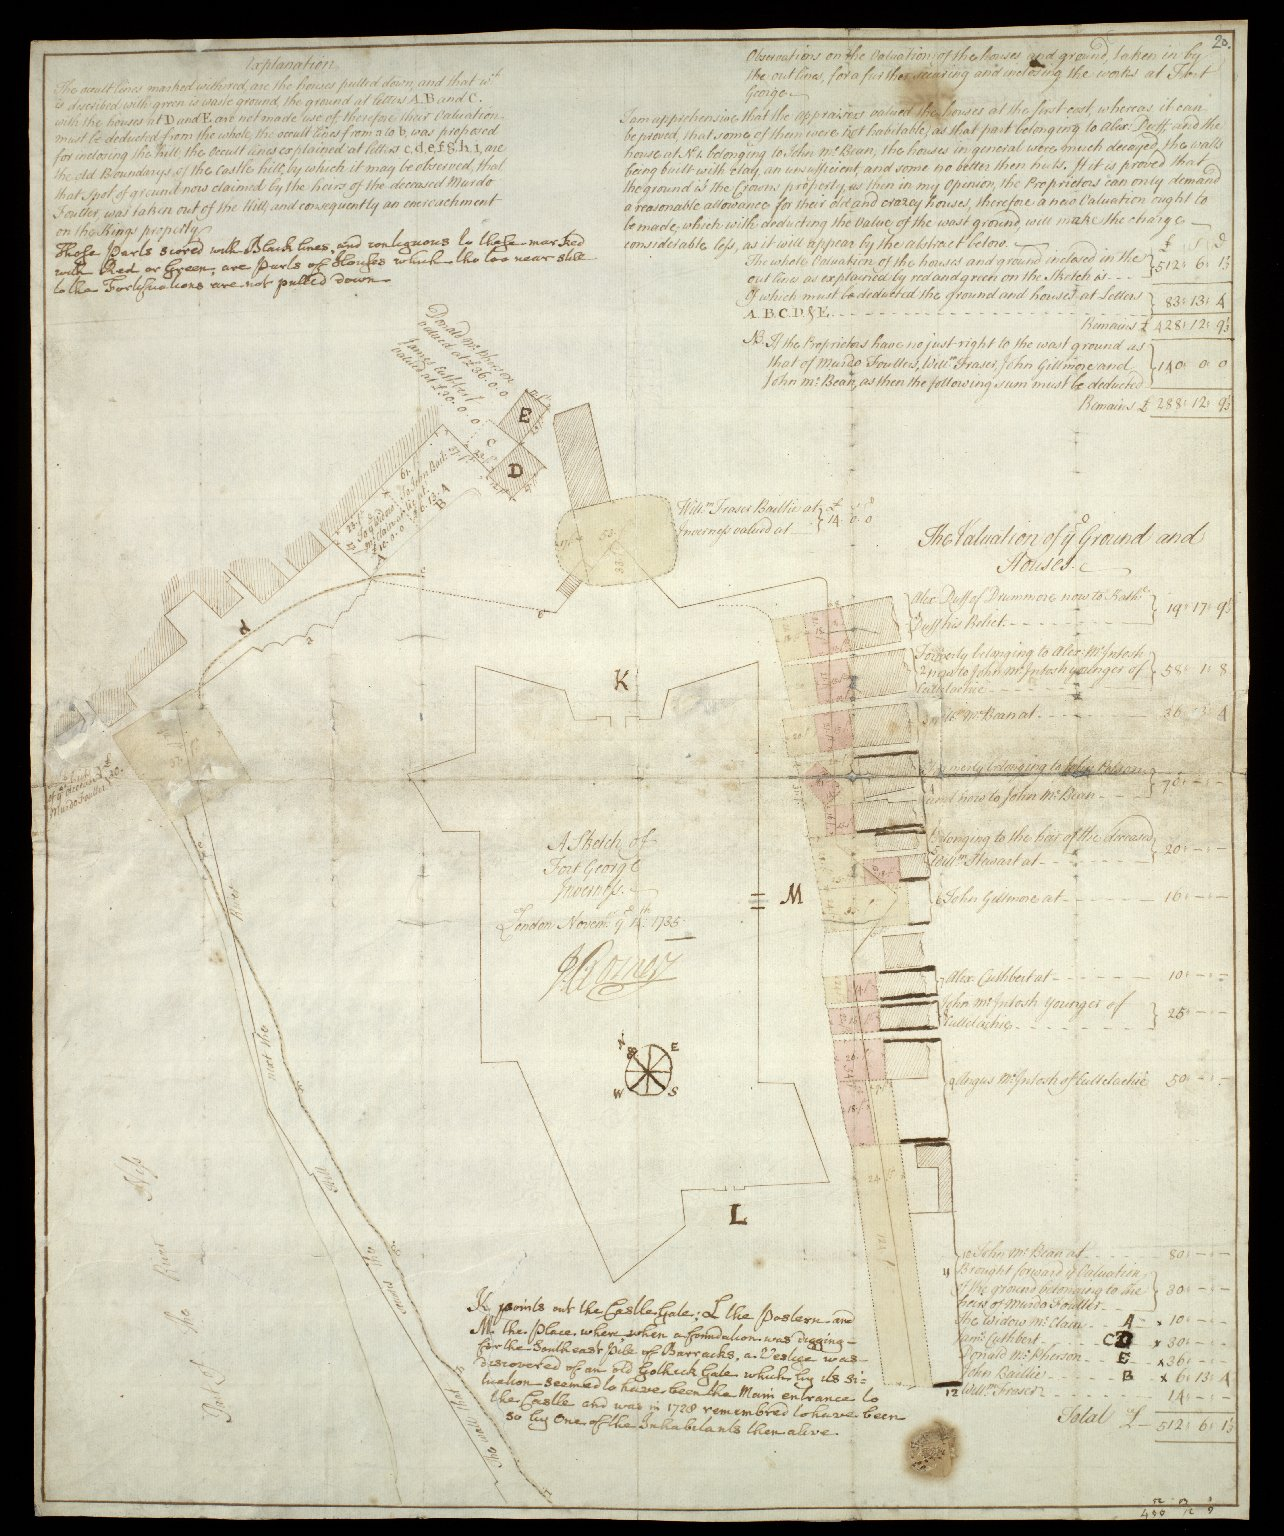 A Sketch of Fort George Inverness [1 of 2]